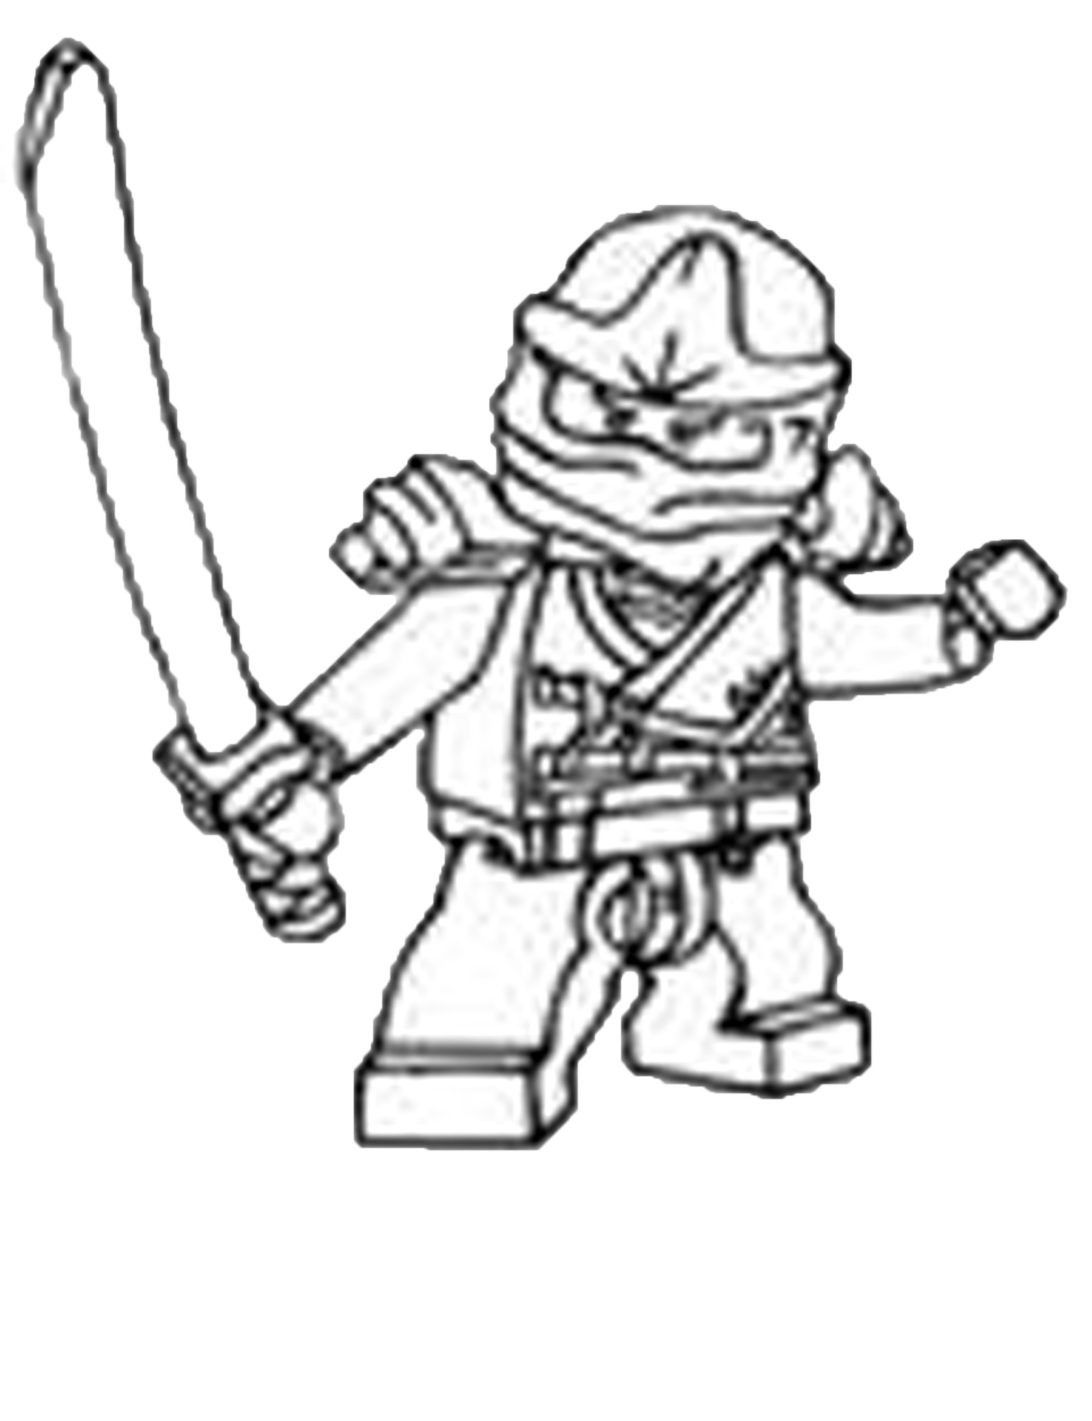 Lego Minecraft Coloring Page Youngandtae Com Lego Minecraft Minecraft Coloring Pages Lego Coloring Pages [ 1421 x 1092 Pixel ]